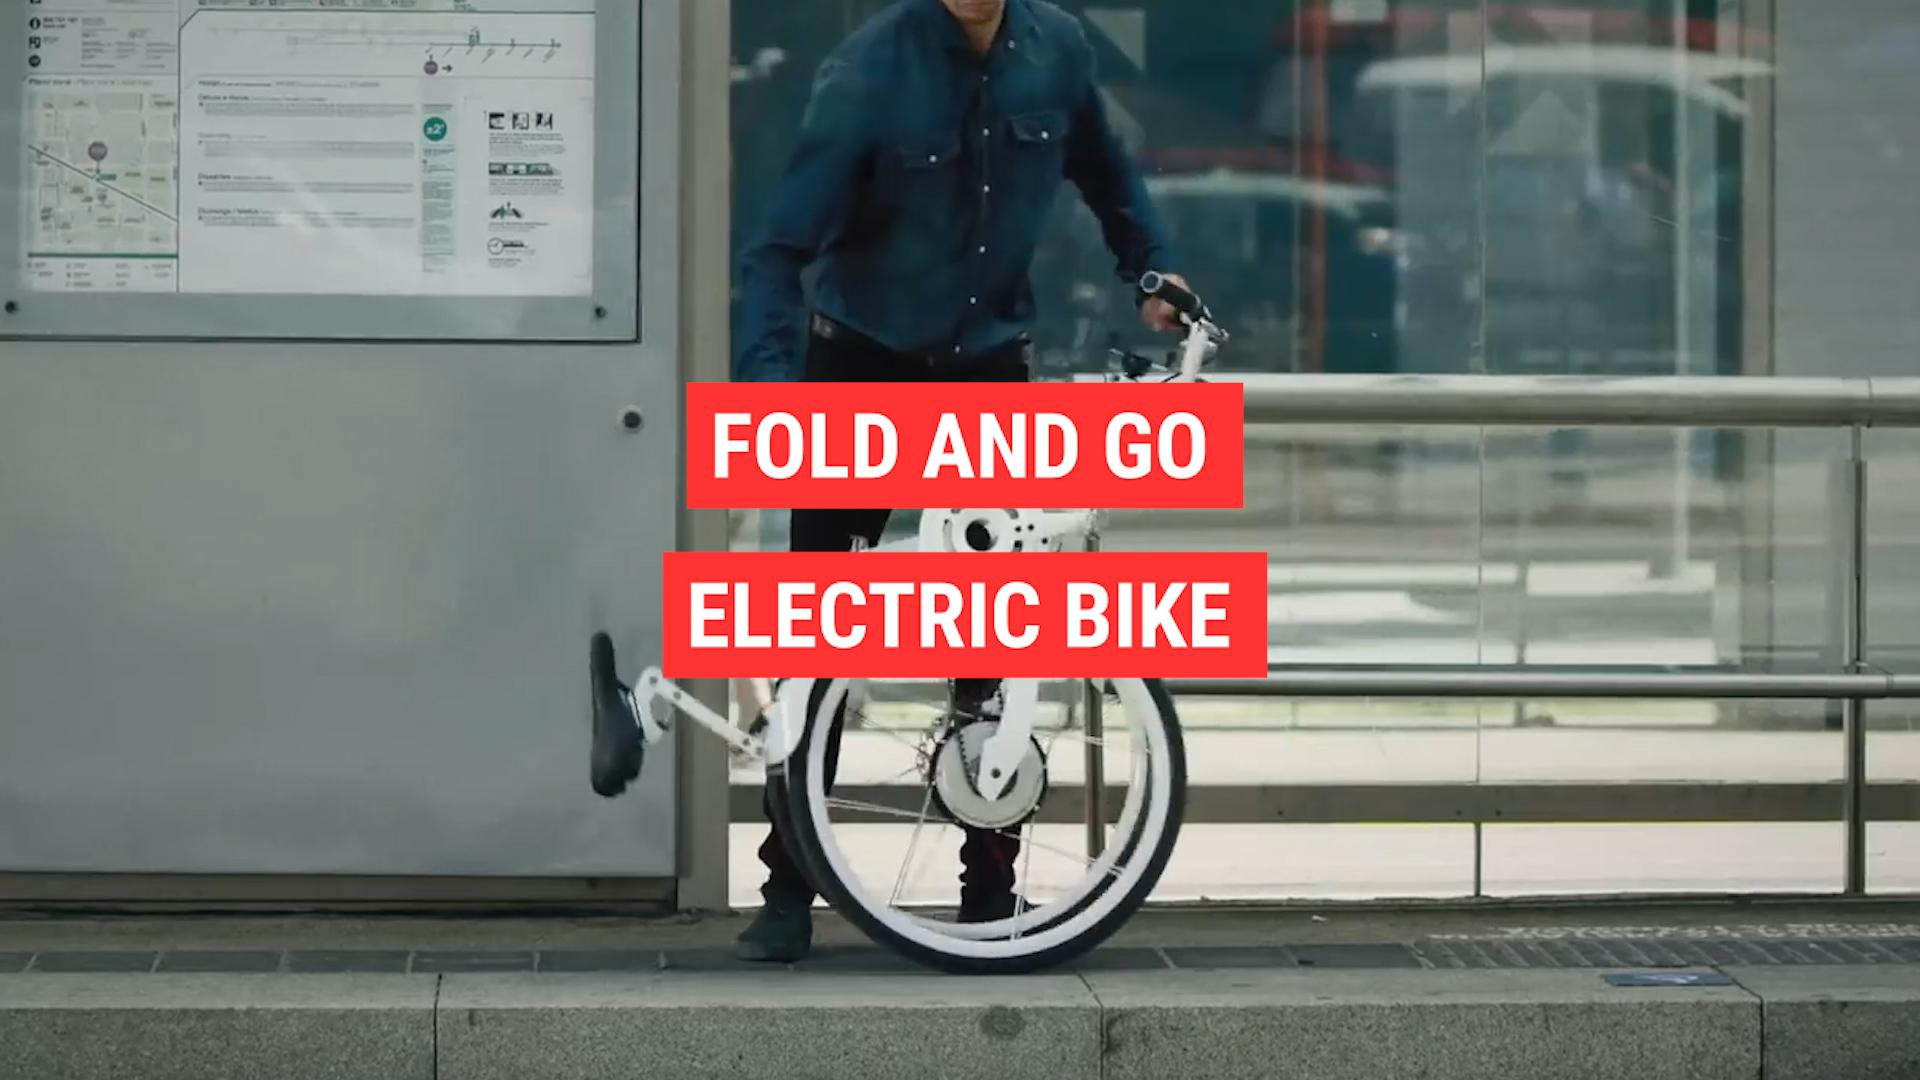 Gm Brands Its Electric Bikes Ariv And Plans To Sell Them